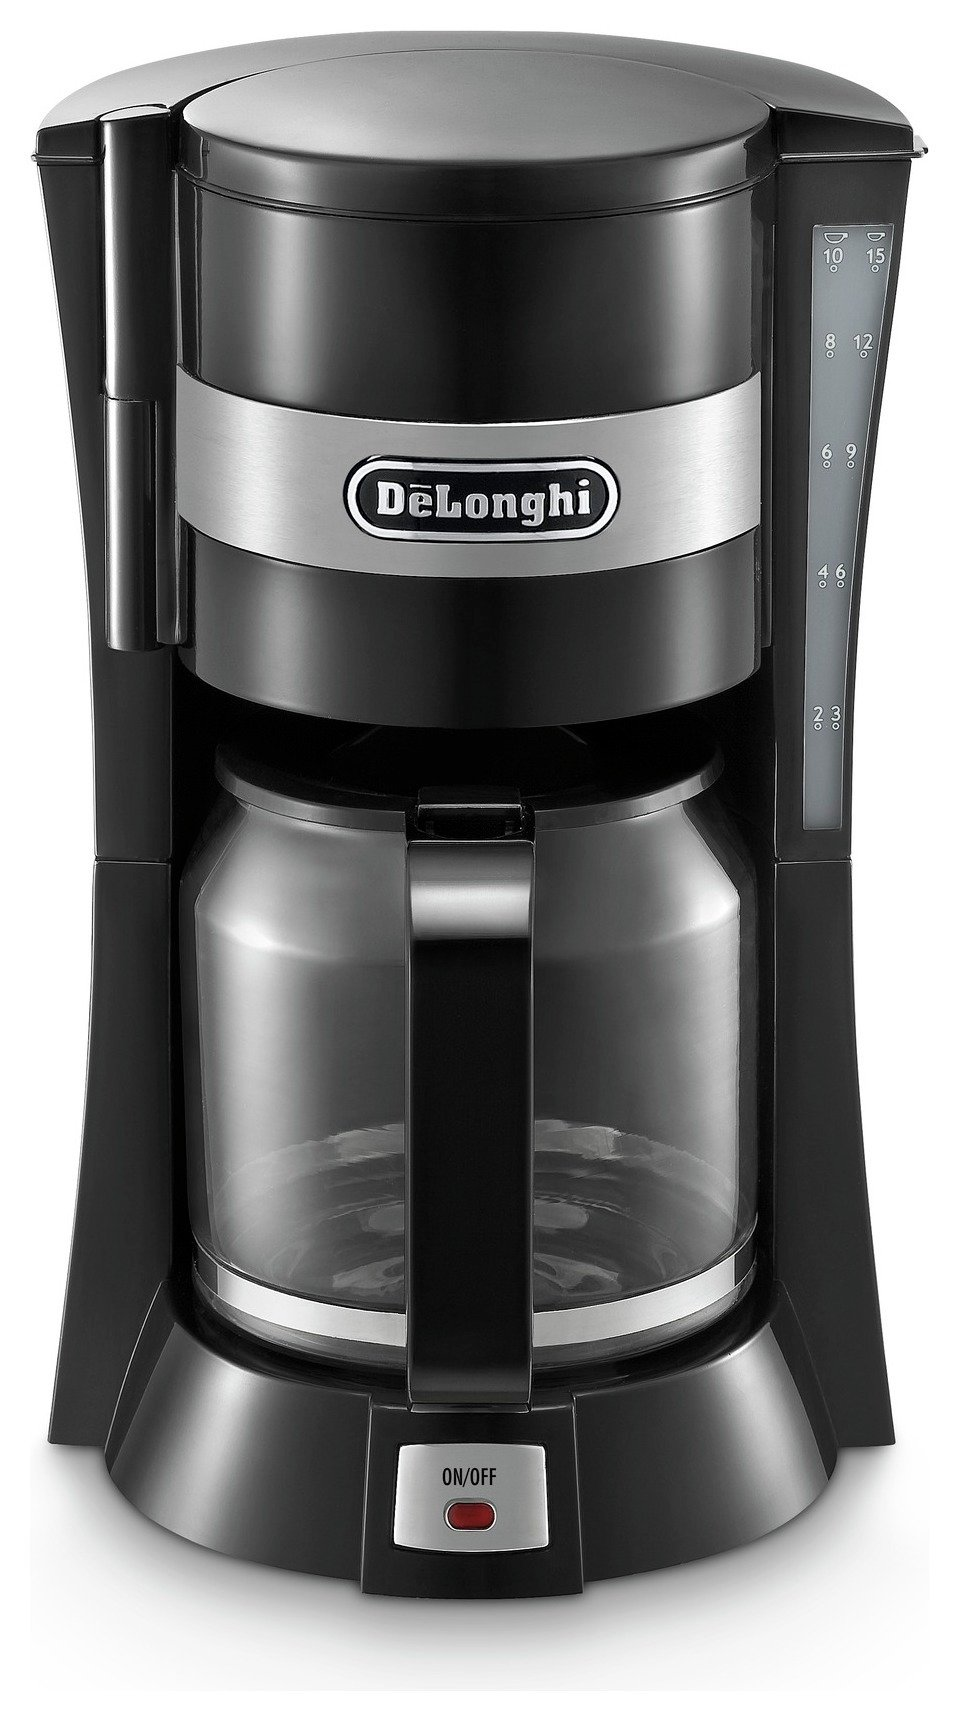 De'Longhi ICM15210 Filter Coffee Machine